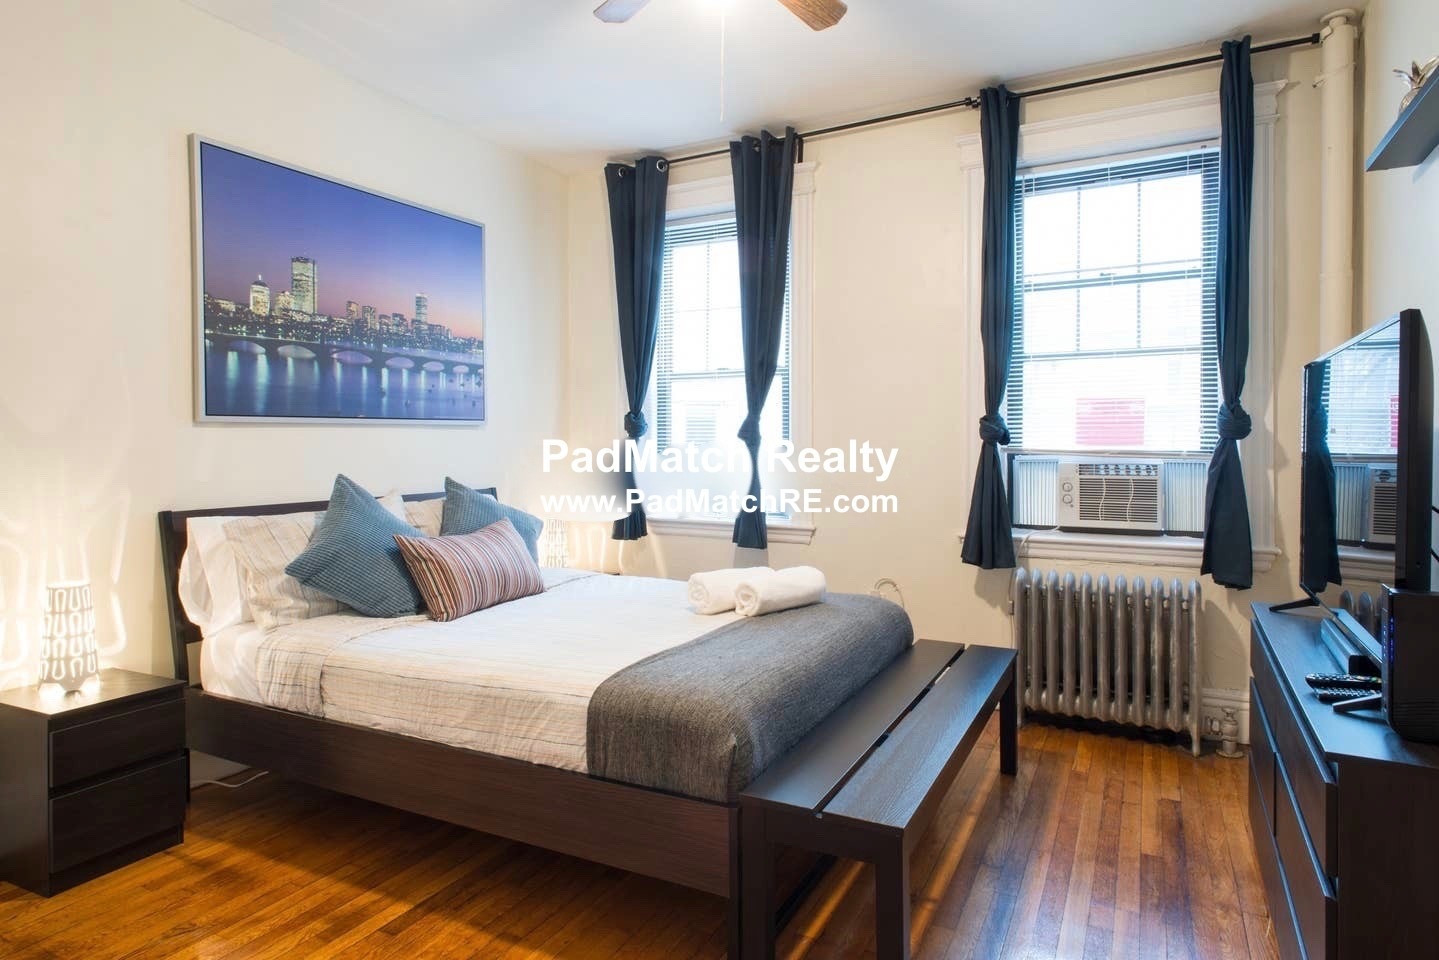 2 Beds, 1 Bath apartment in Boston, Fenway for $2,700